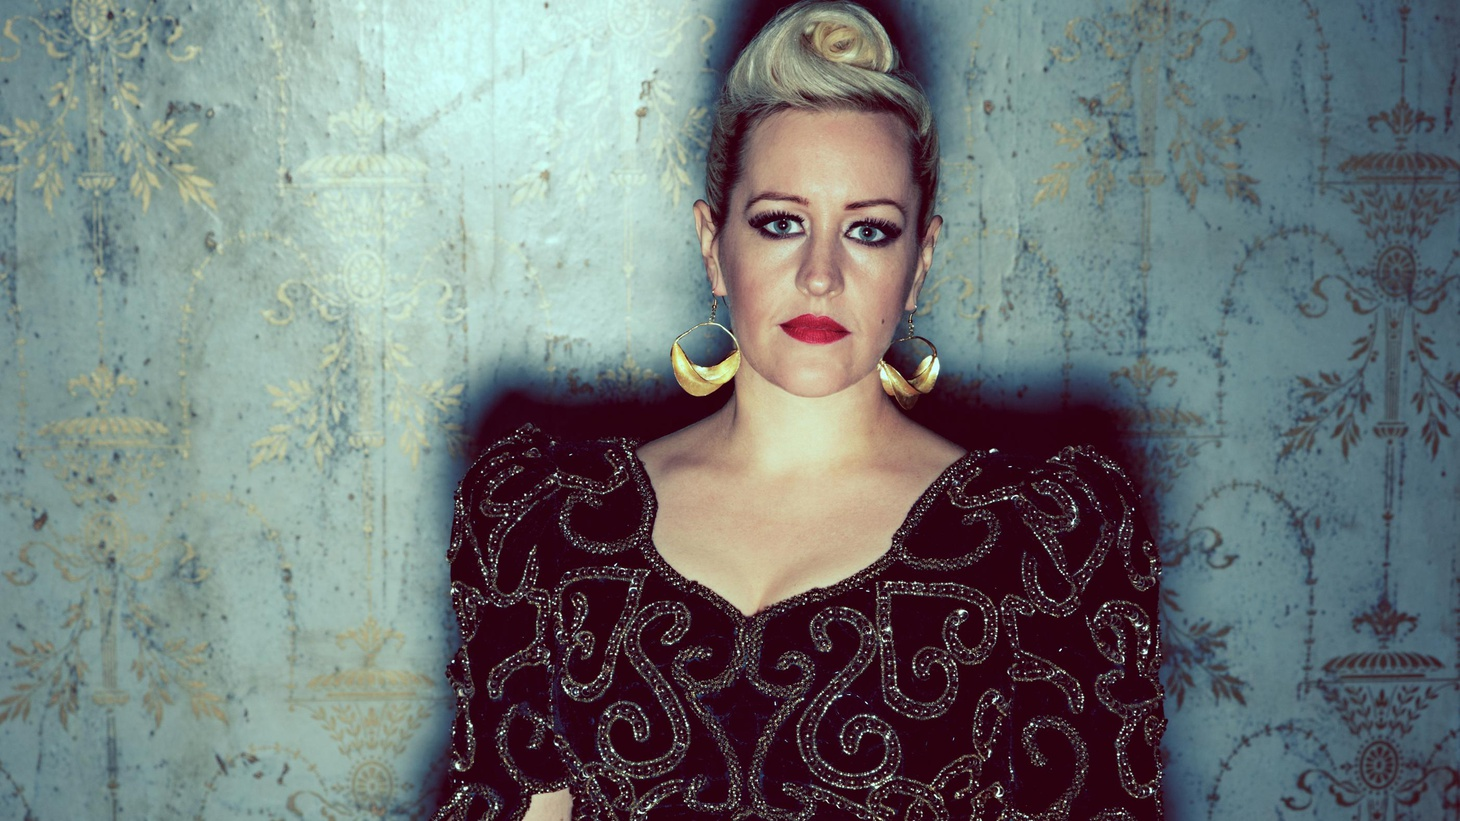 Soulful songstress Alice Russell waited five years before releasing her latest solo album. The lovelorn singer makes heartbreak sexy and danceable...